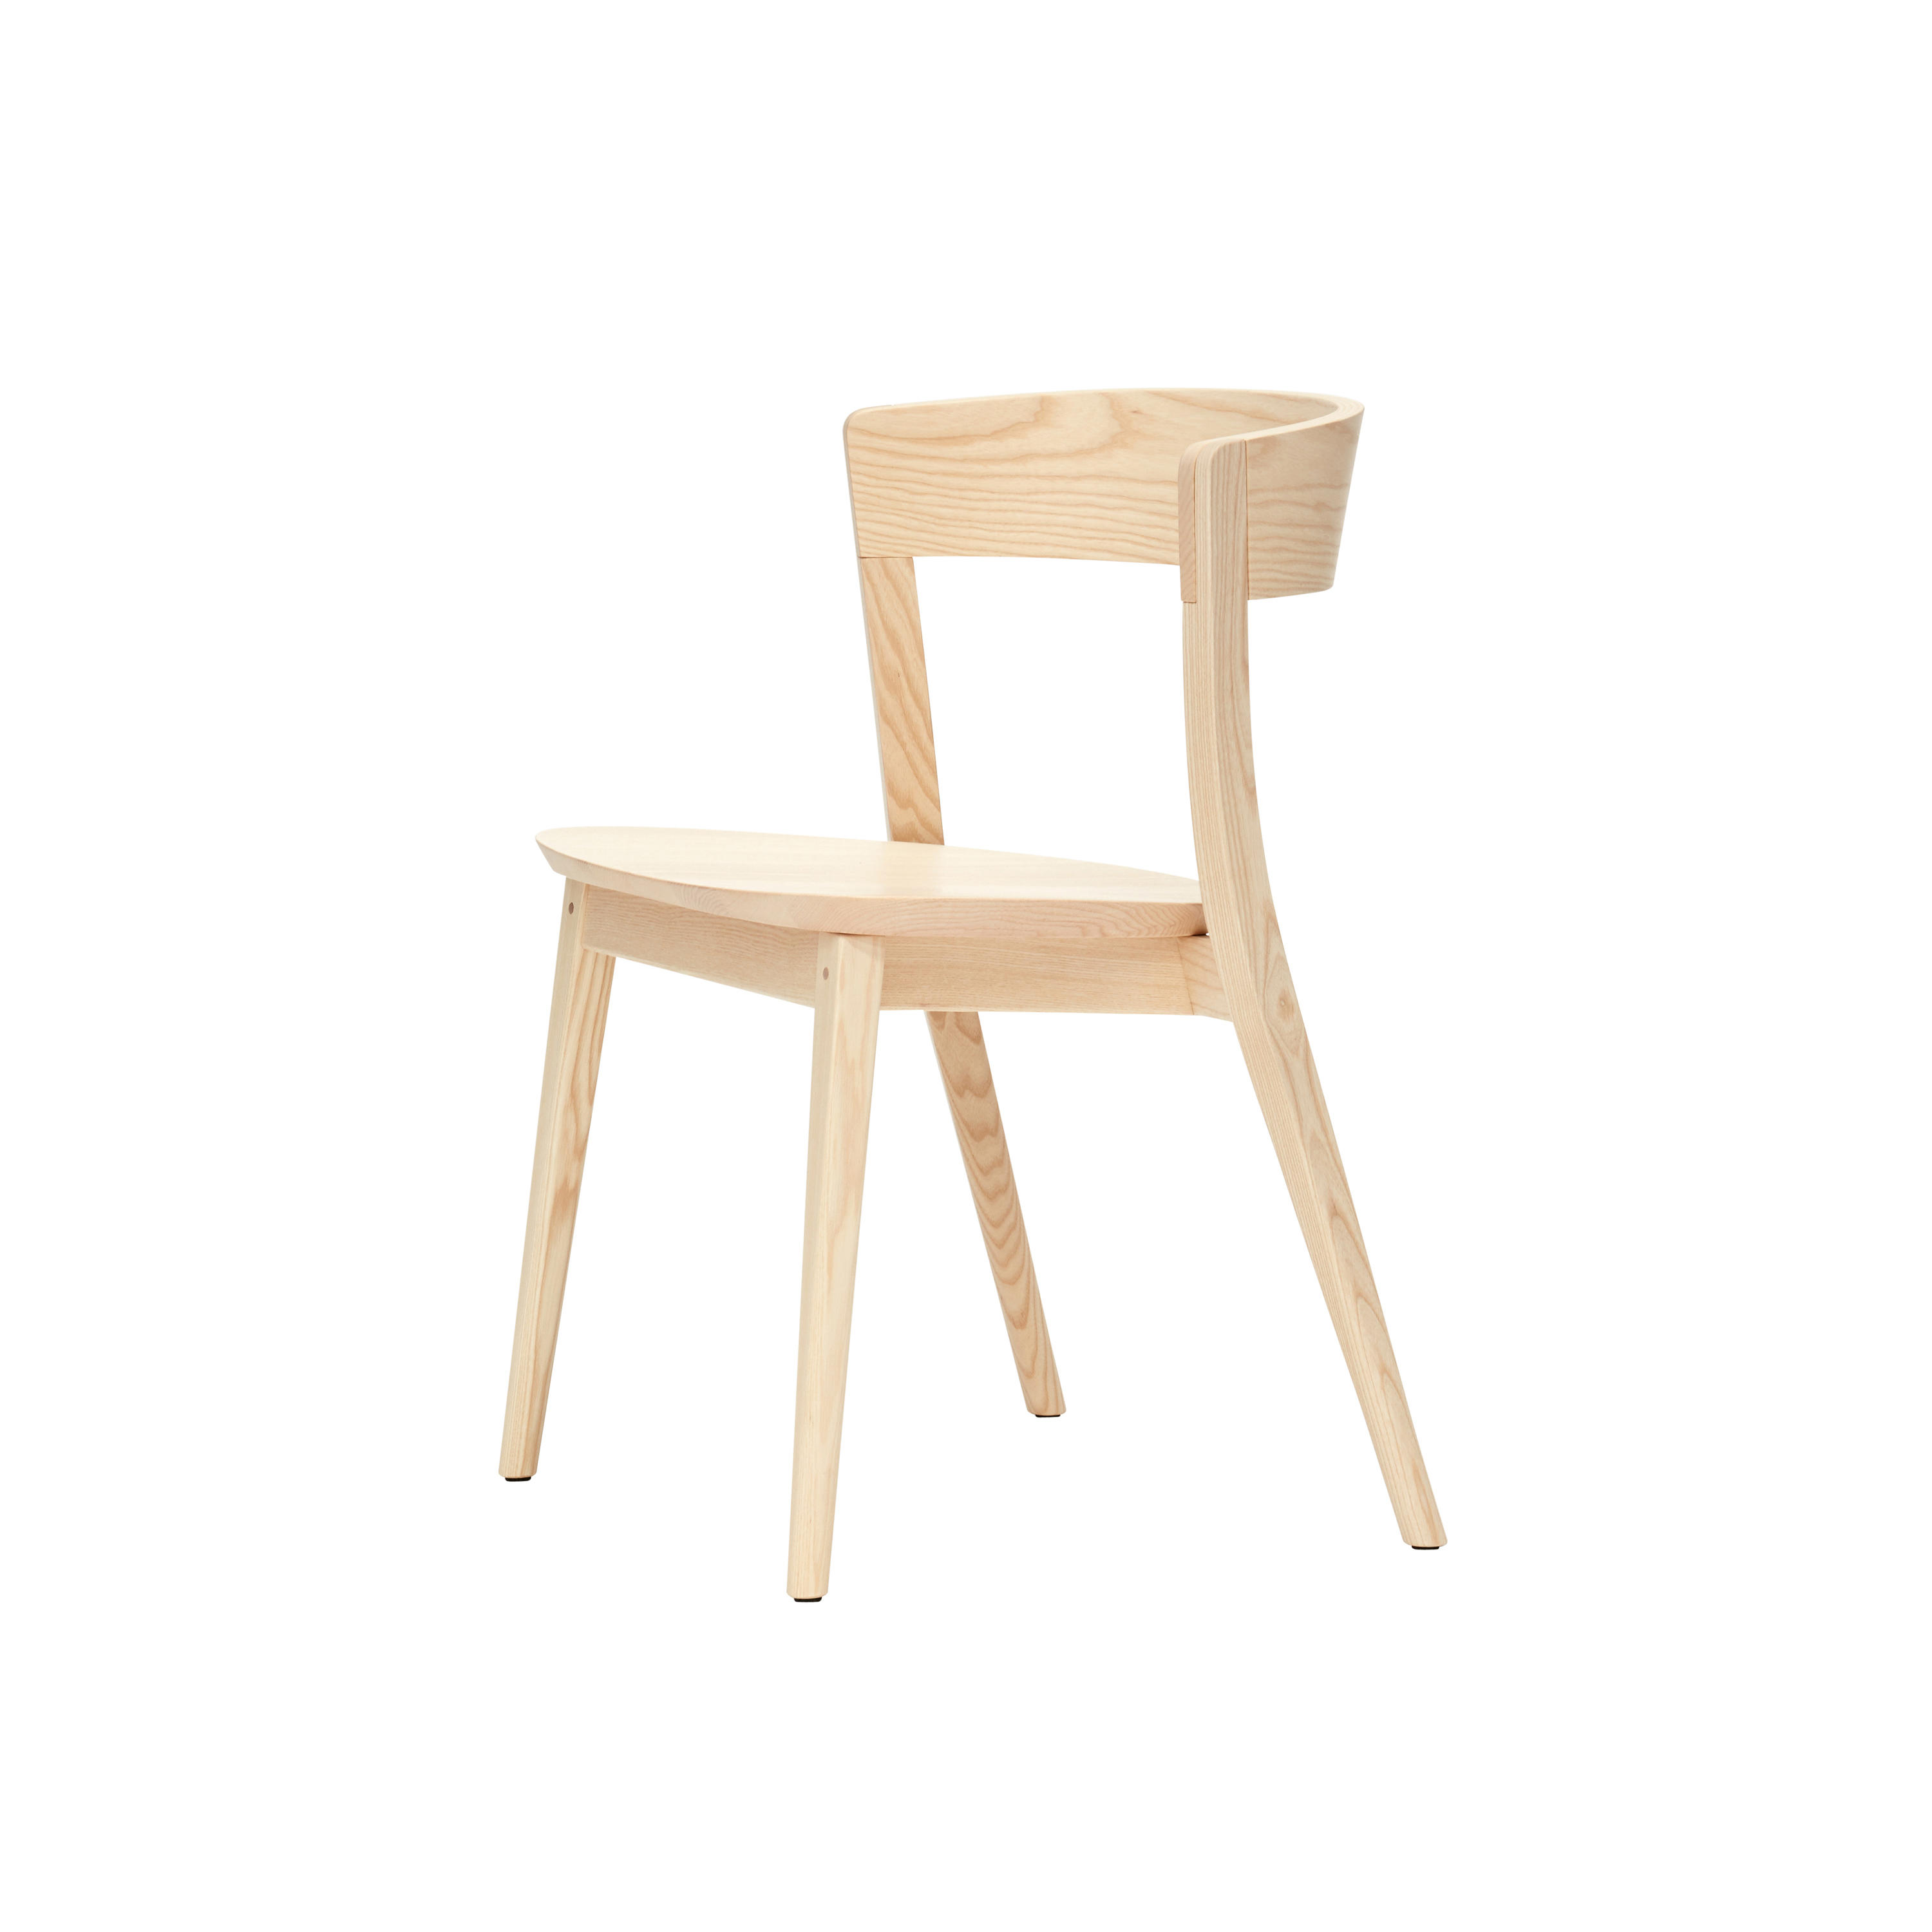 CLARKE - Chairs from SP6  Architonic